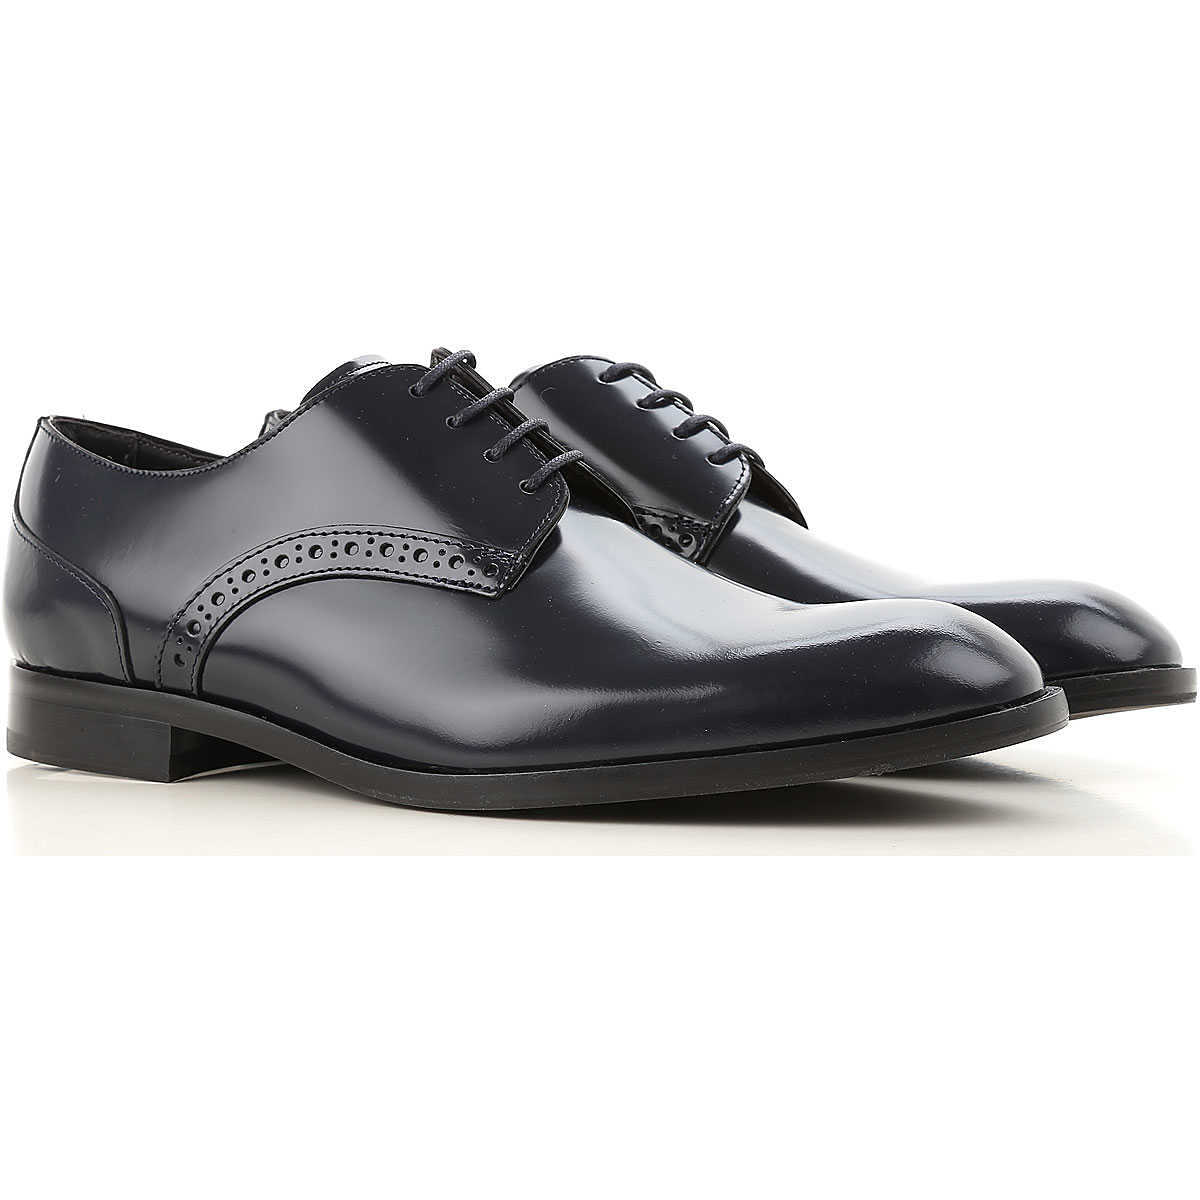 Emporio Armani Lace Up Shoes for Men Oxfords 11 6 7 8 Derbies and Brogues On Sale in Outlet UK - GOOFASH